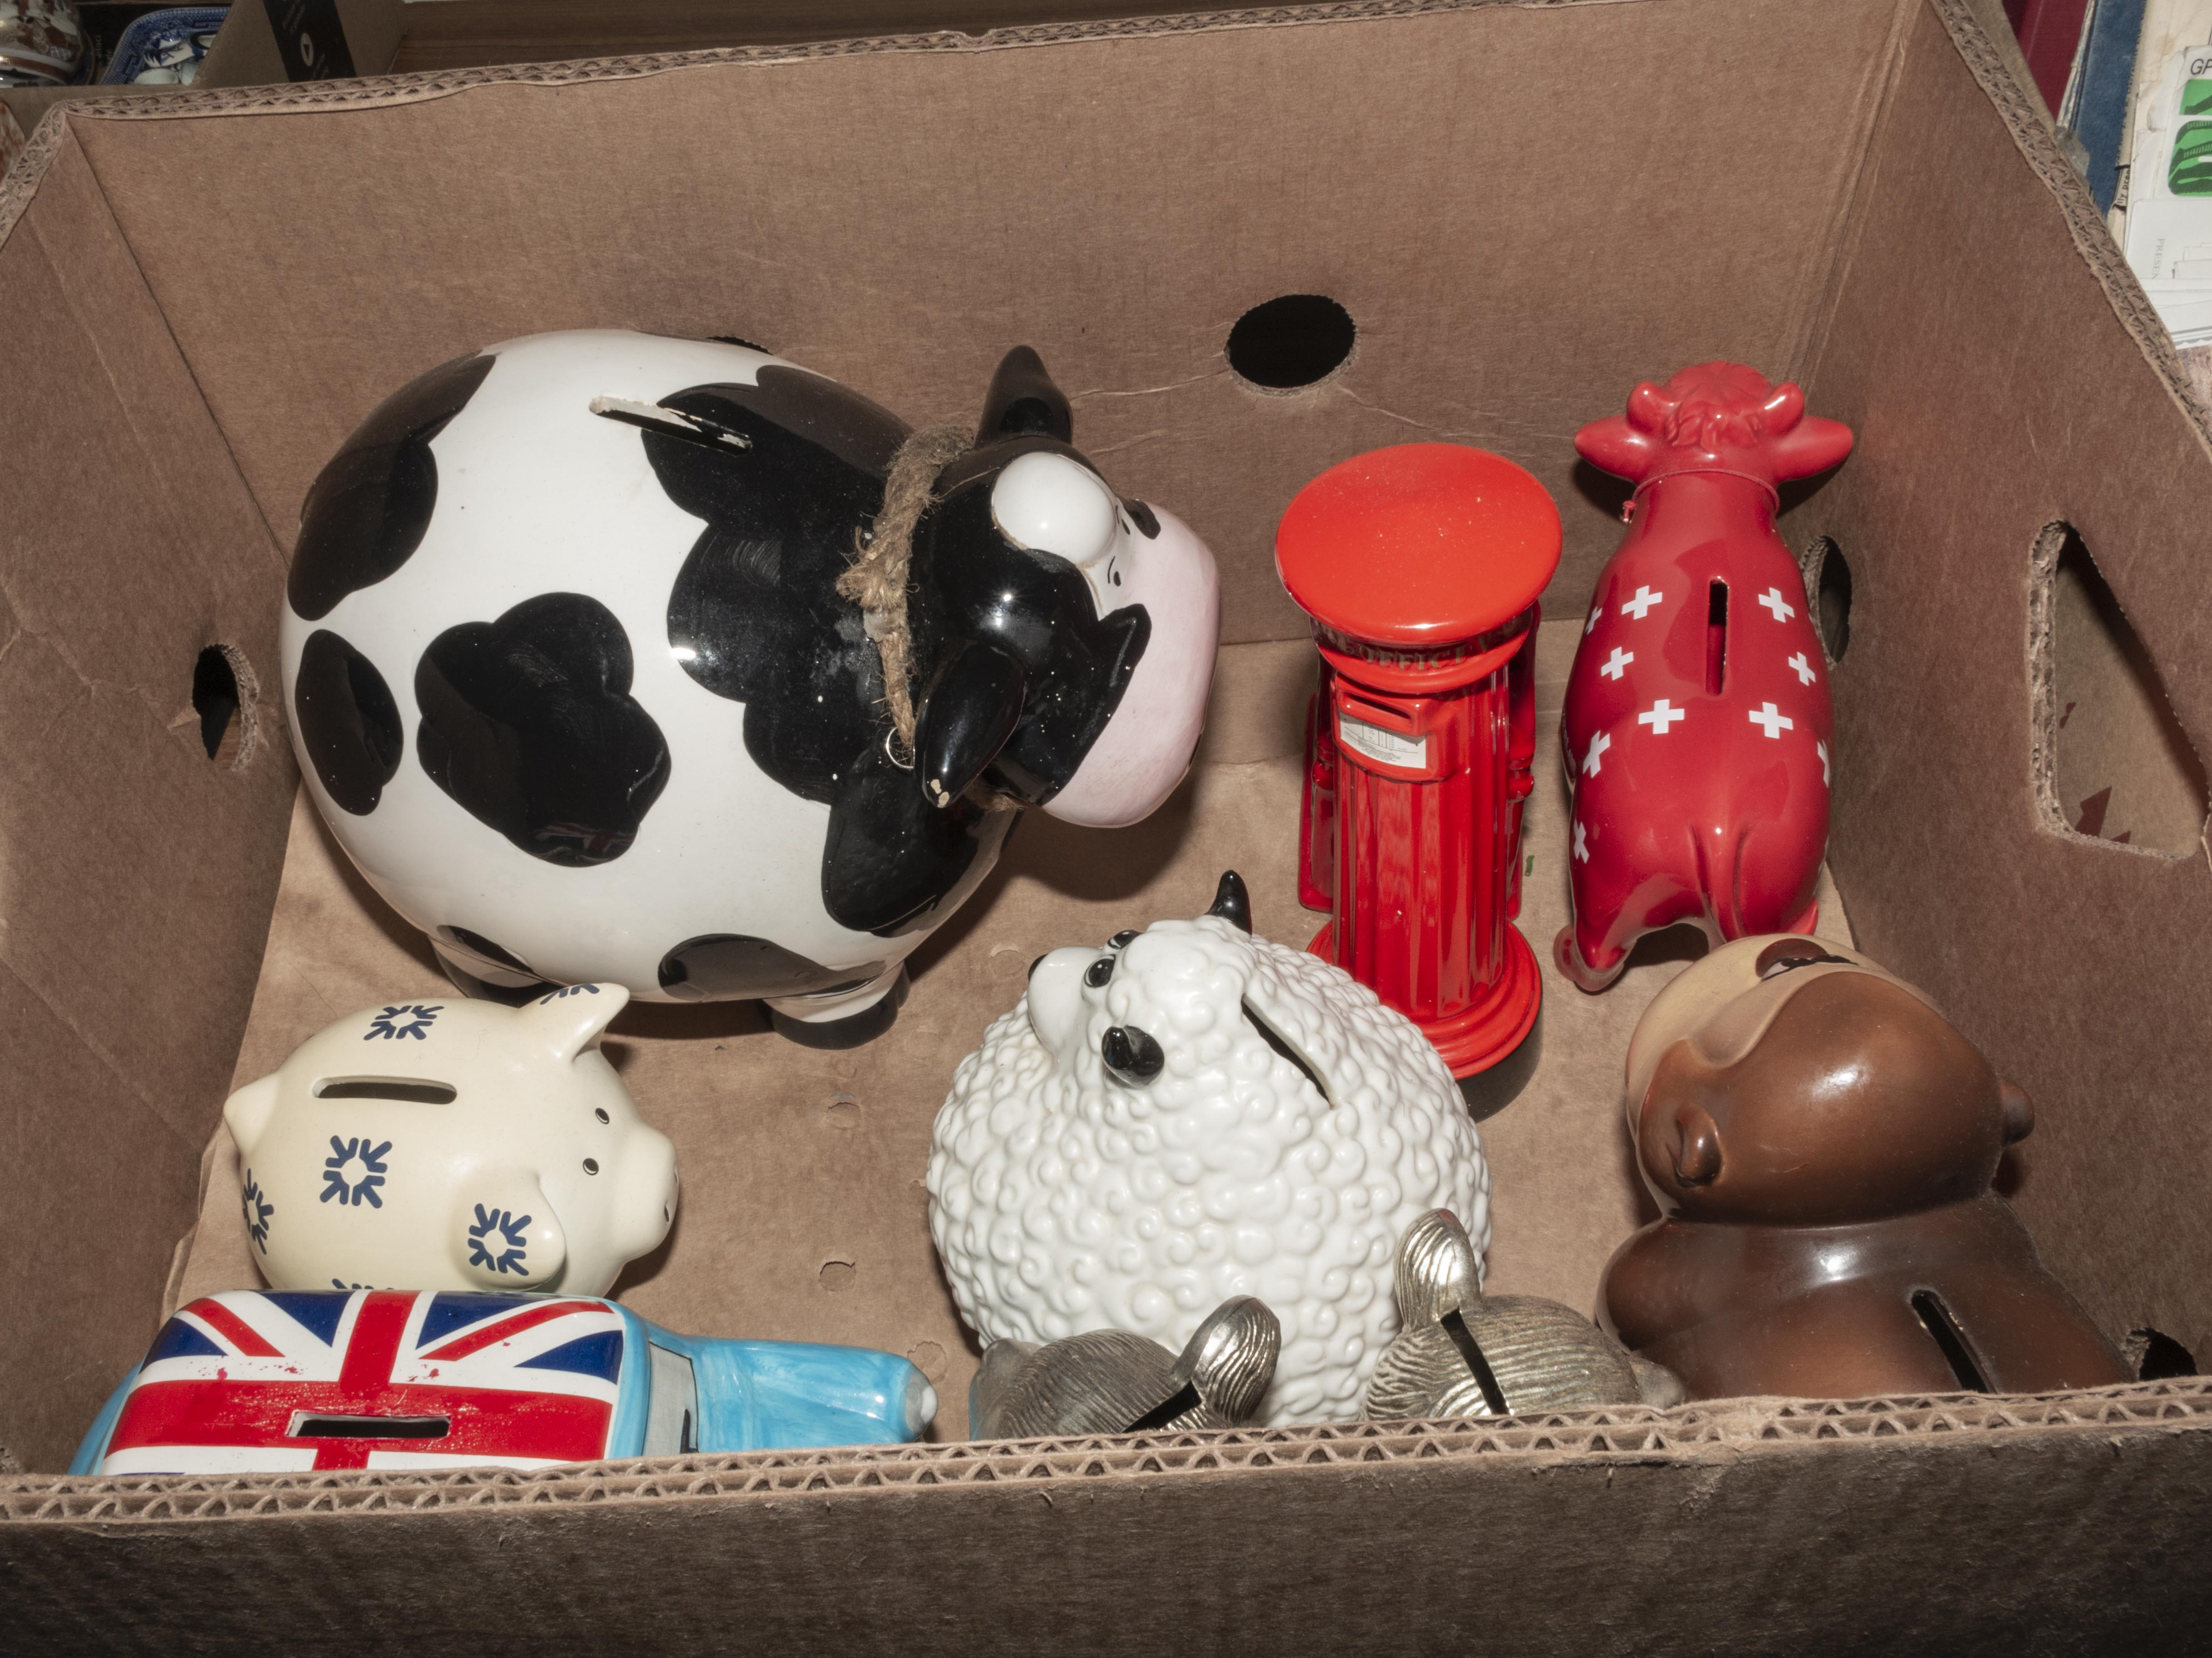 Lot 39 - A box containing pottery money banks